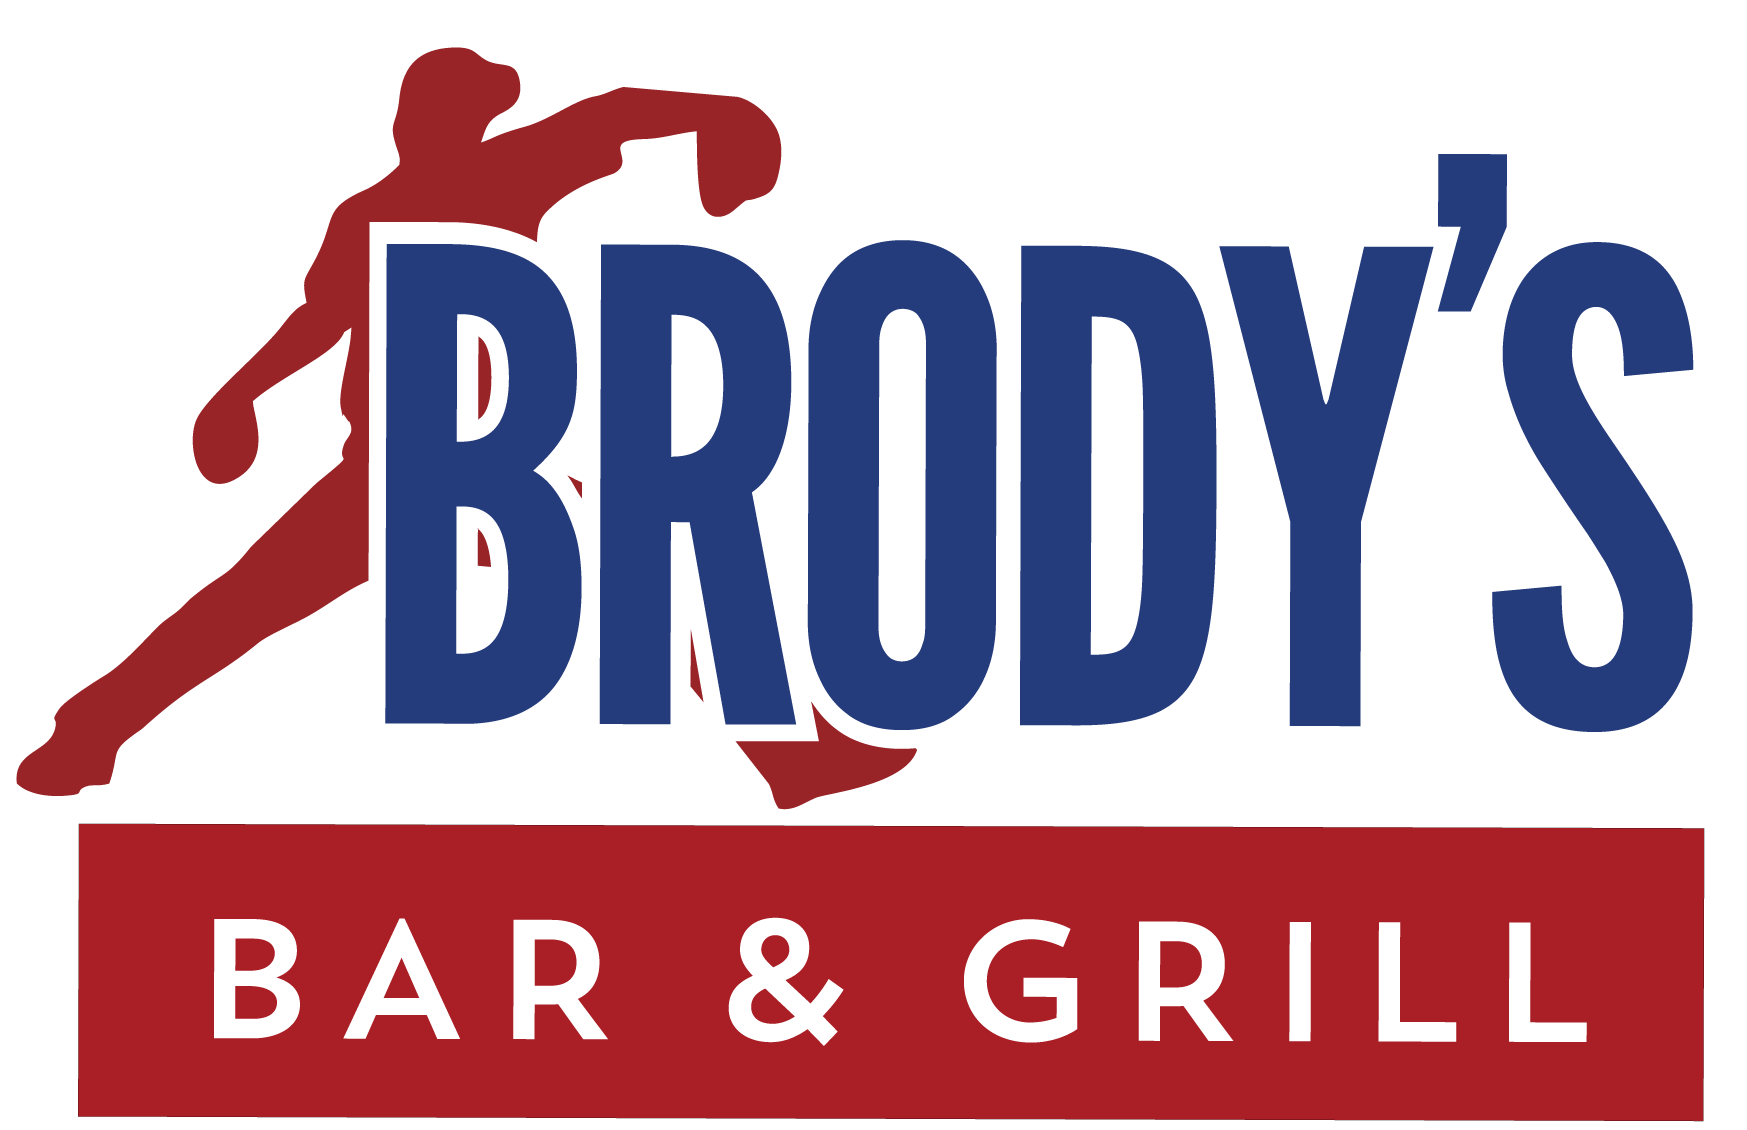 Brody's Bar & Grill